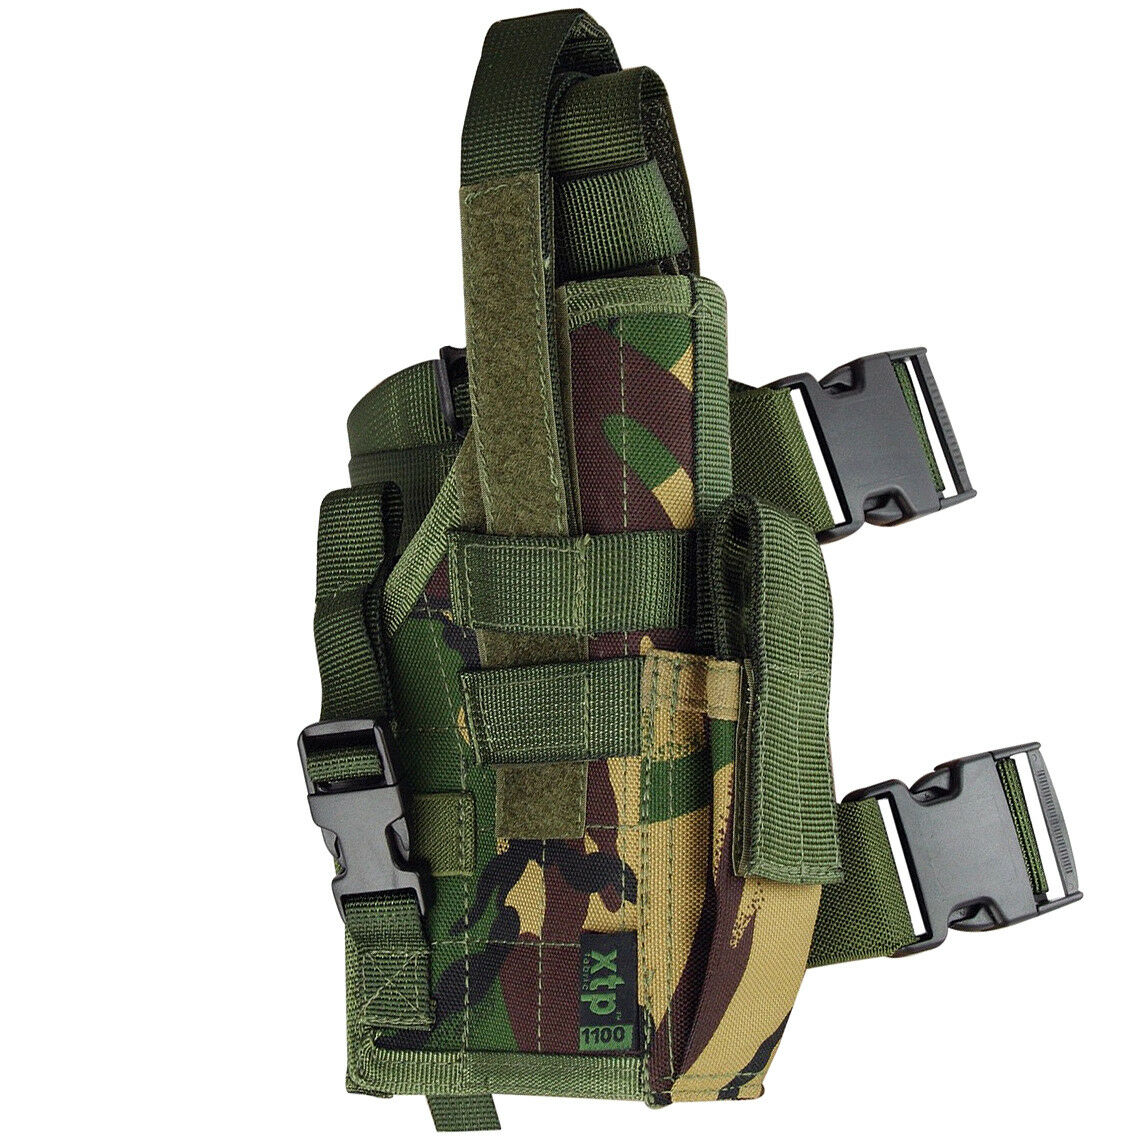 TACTISCHE ARMY LEG PISTOL HOLSTER COMBAT MODULAR MOLLE SYSTEM DPM CAMOUFFLAGE